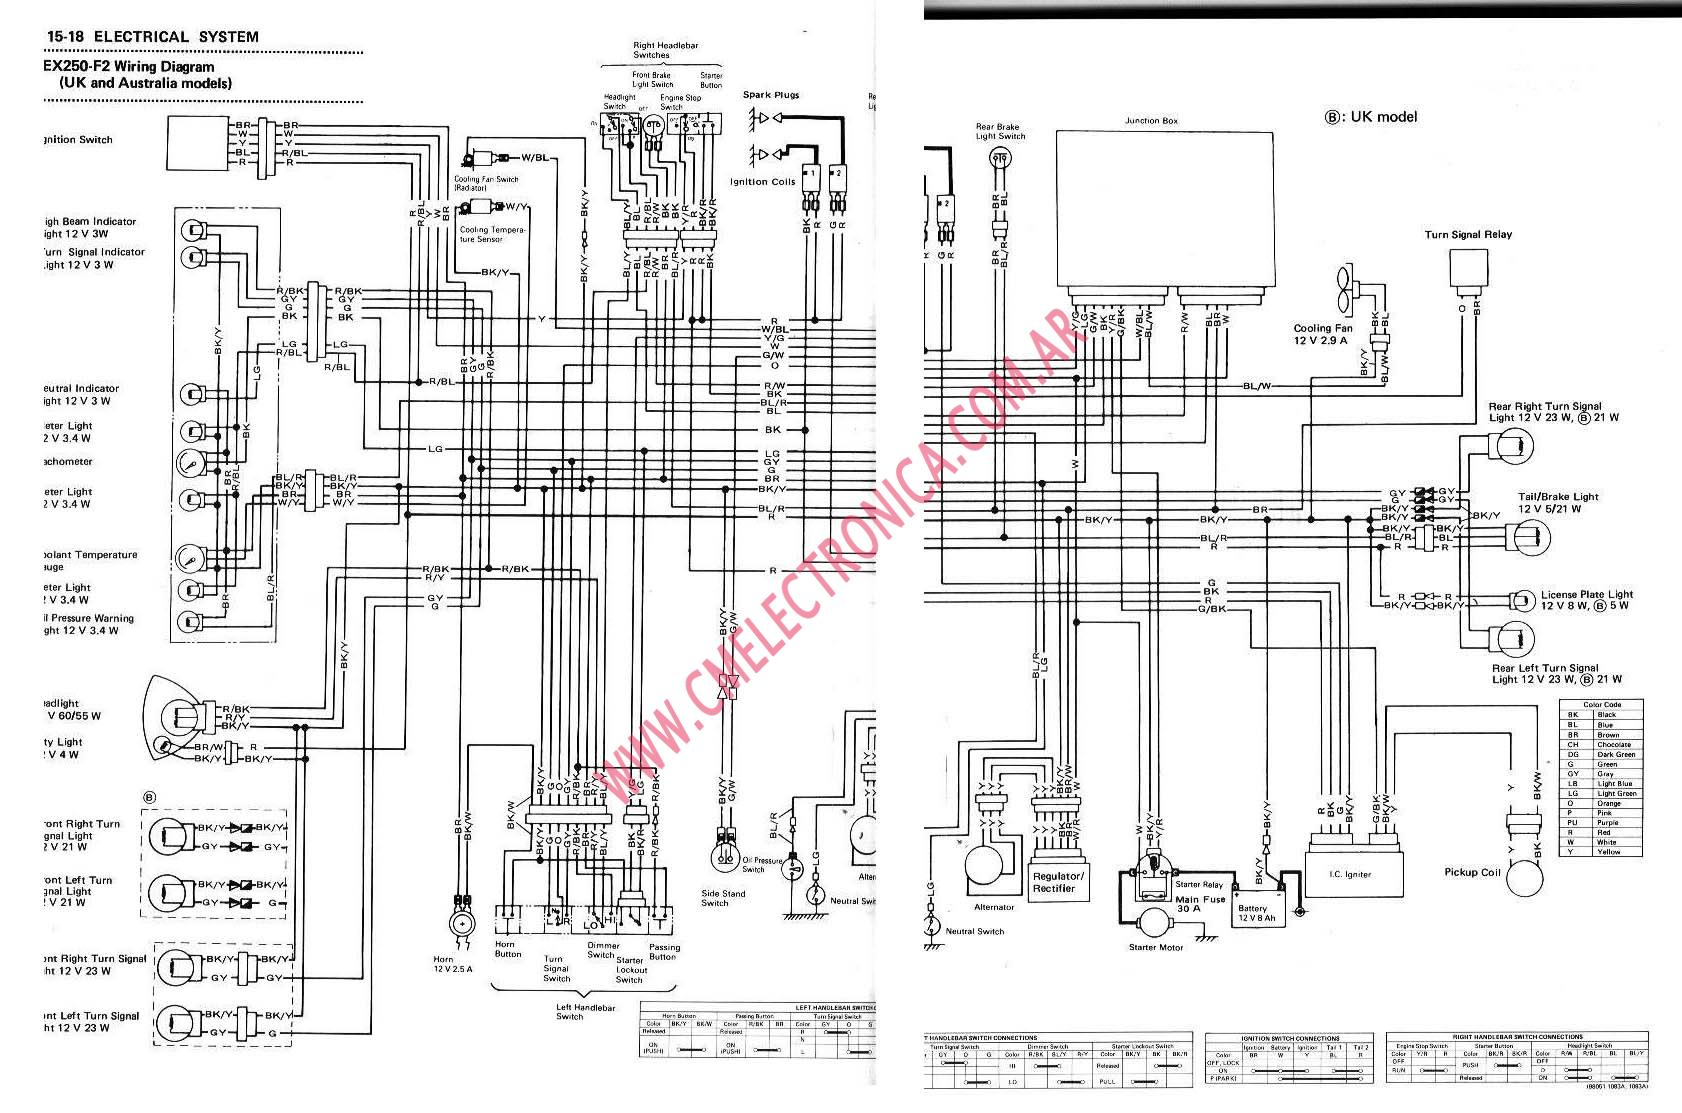 Jaguar Xj8 Fuse Box Diagram Jaguar Auto Wiring Diagram